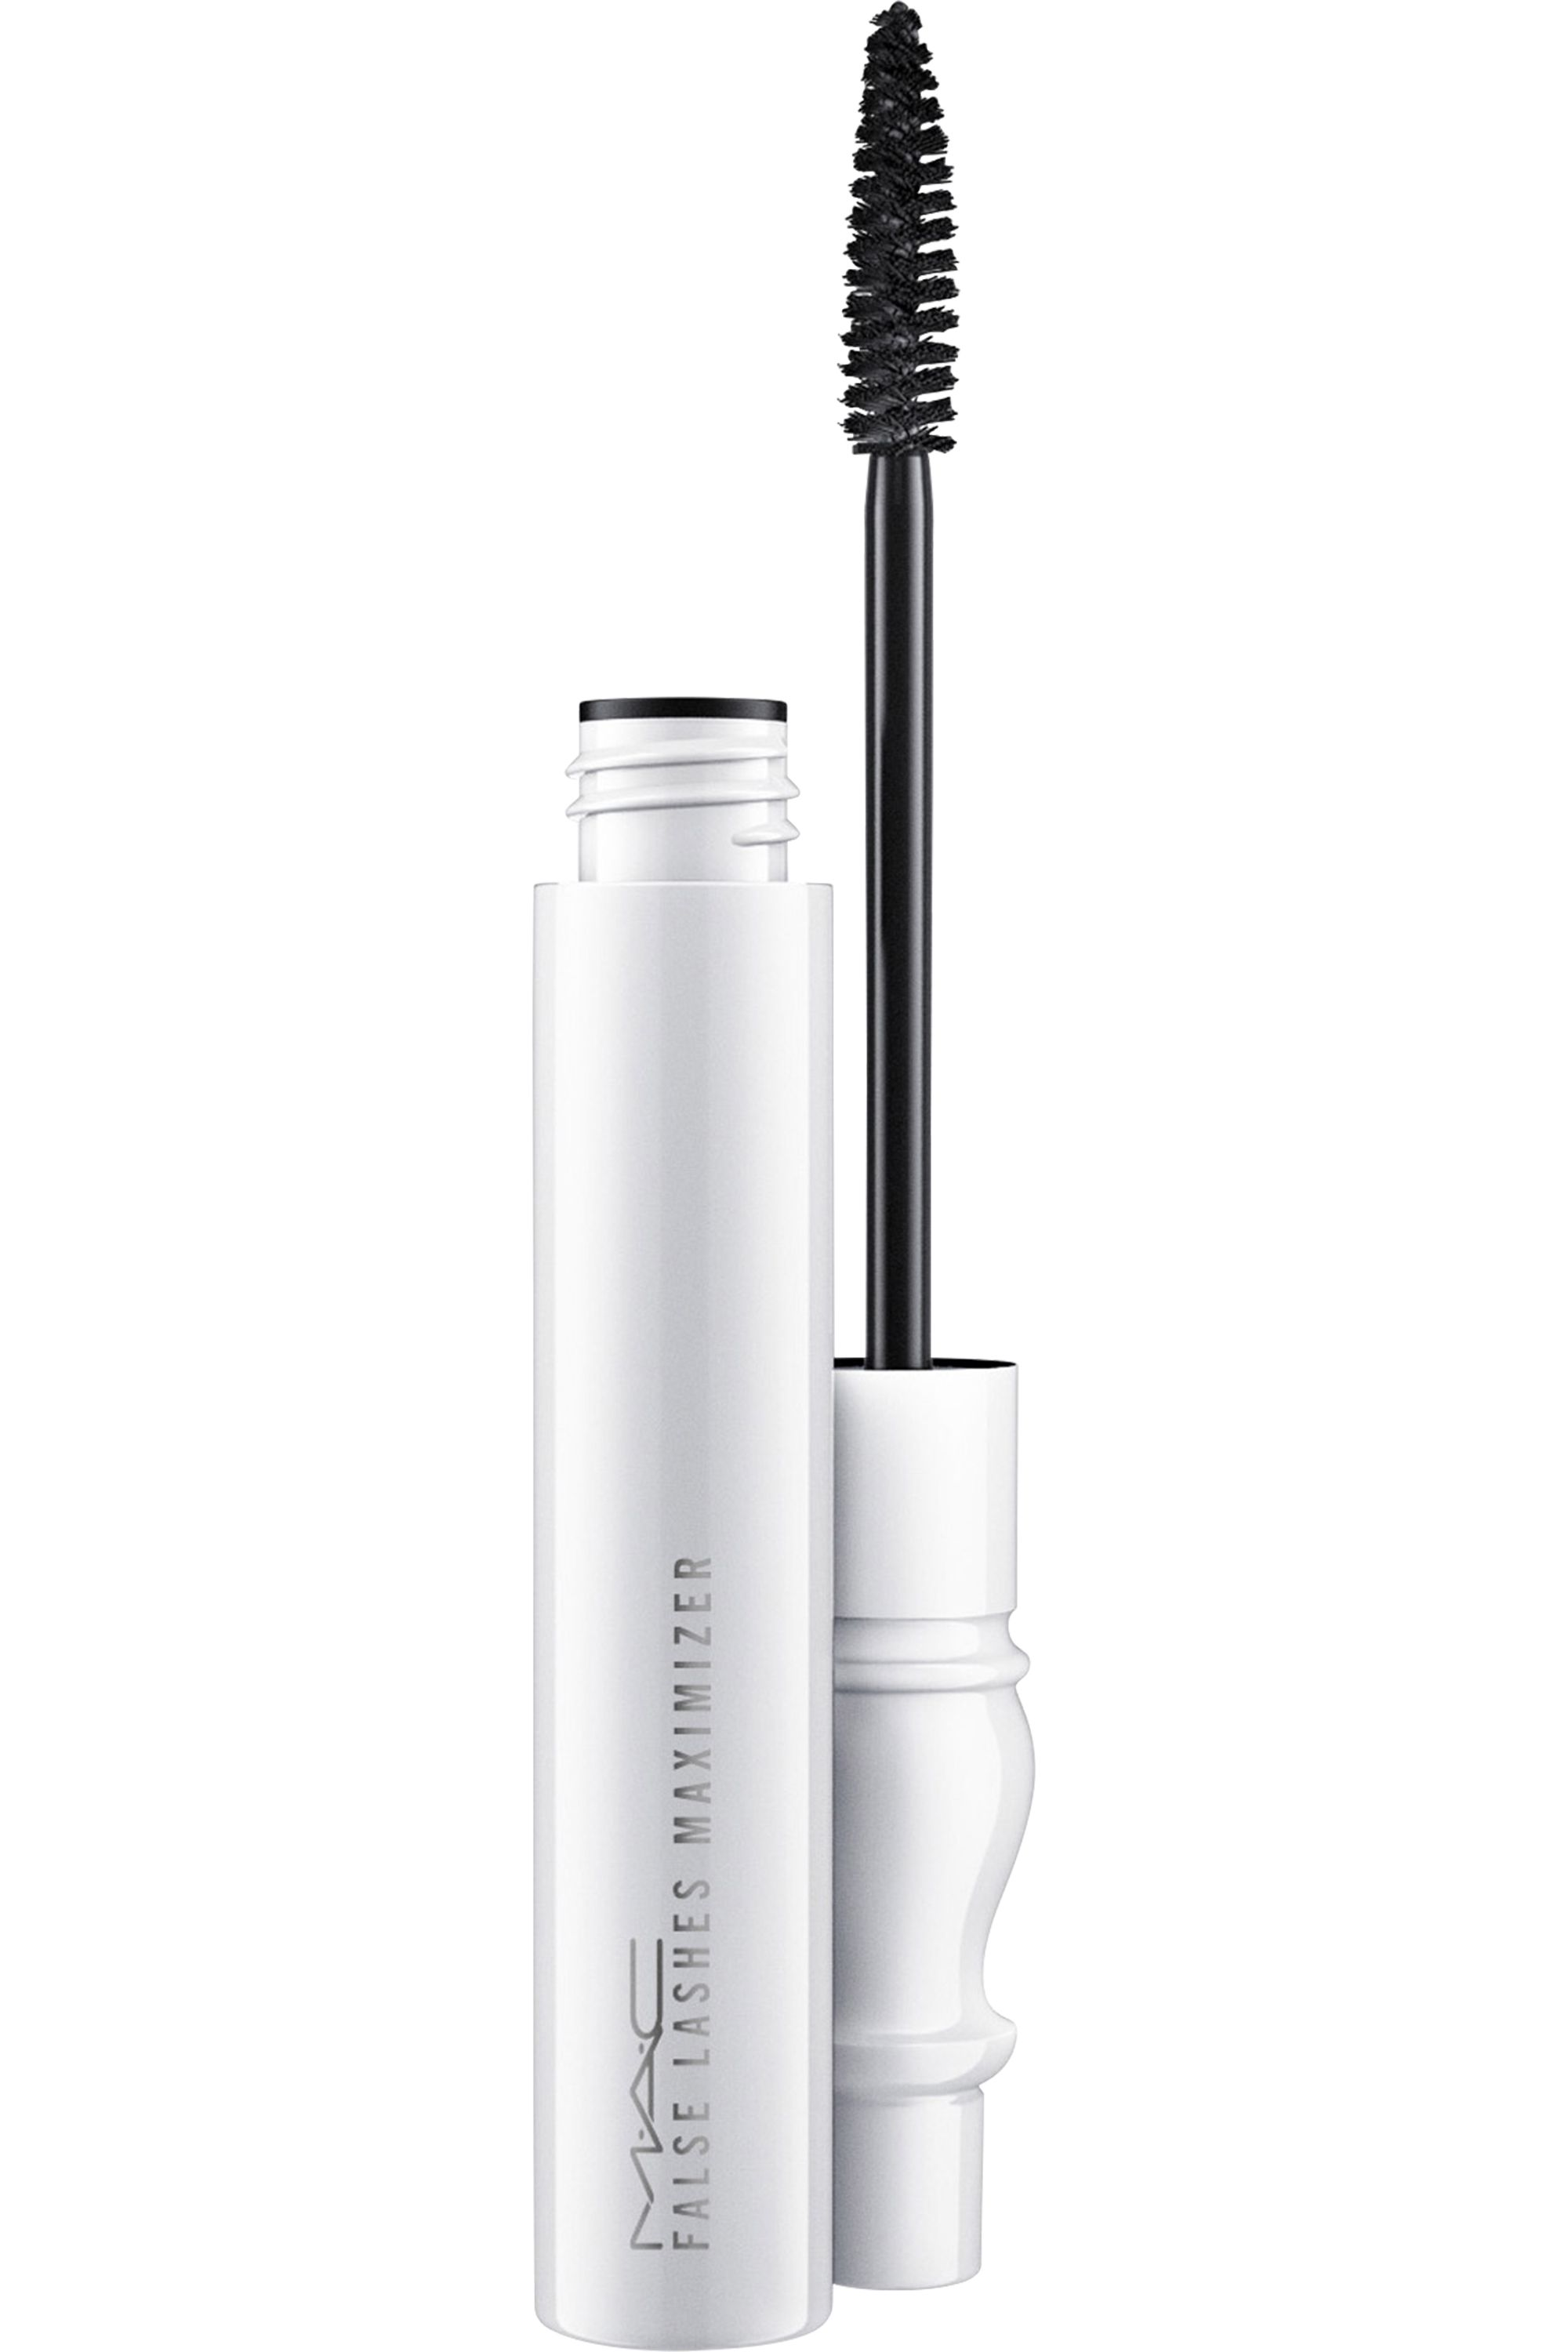 Blissim : M.A.C - Mascara False Lashes Maximizer Blanc - Mascara False Lashes Maximizer Blanc